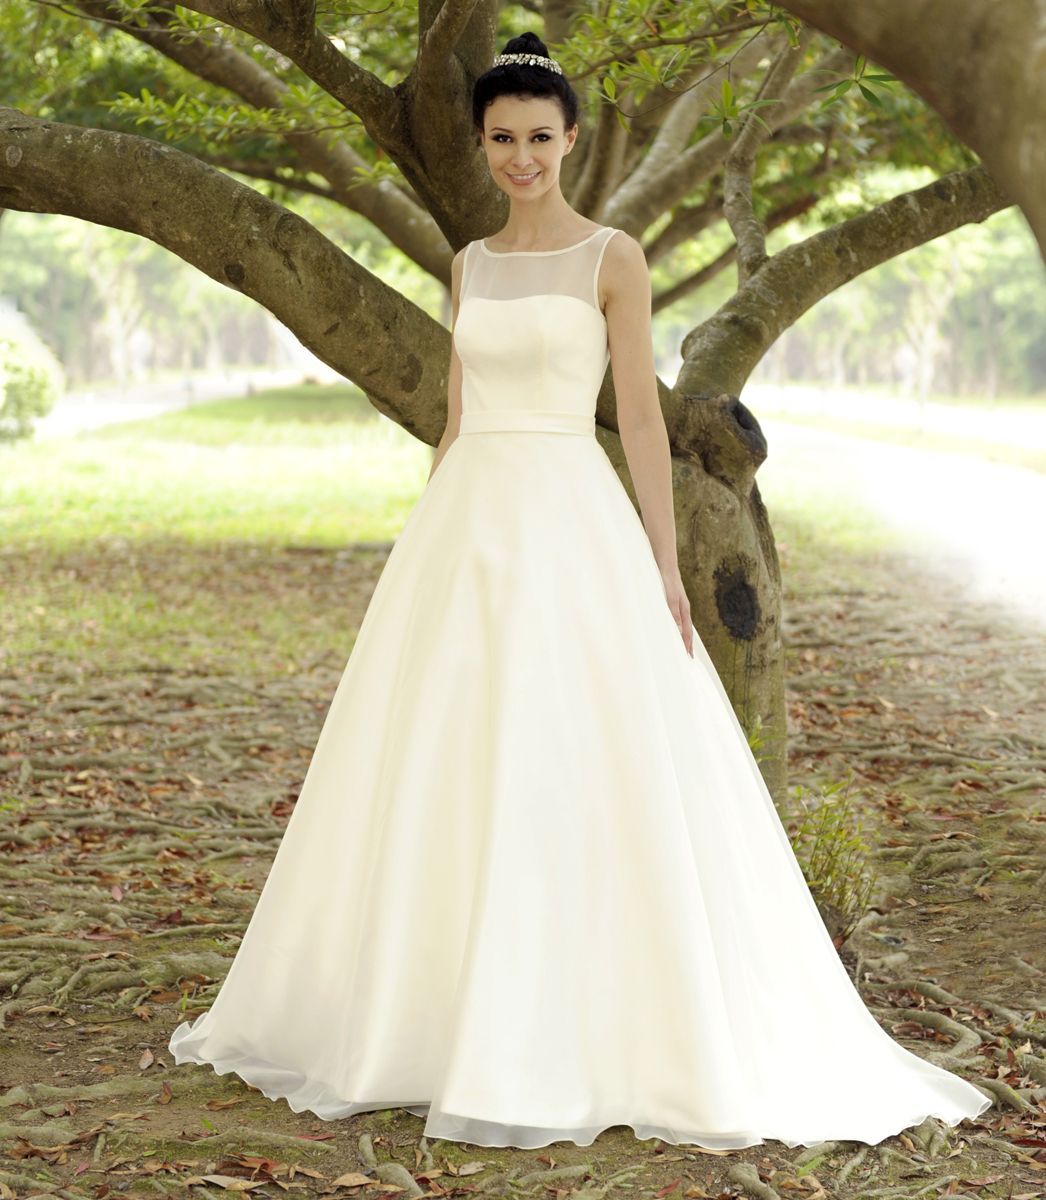 Find This Dress At Our Augusta Jones Trunk Show Jan 24-26